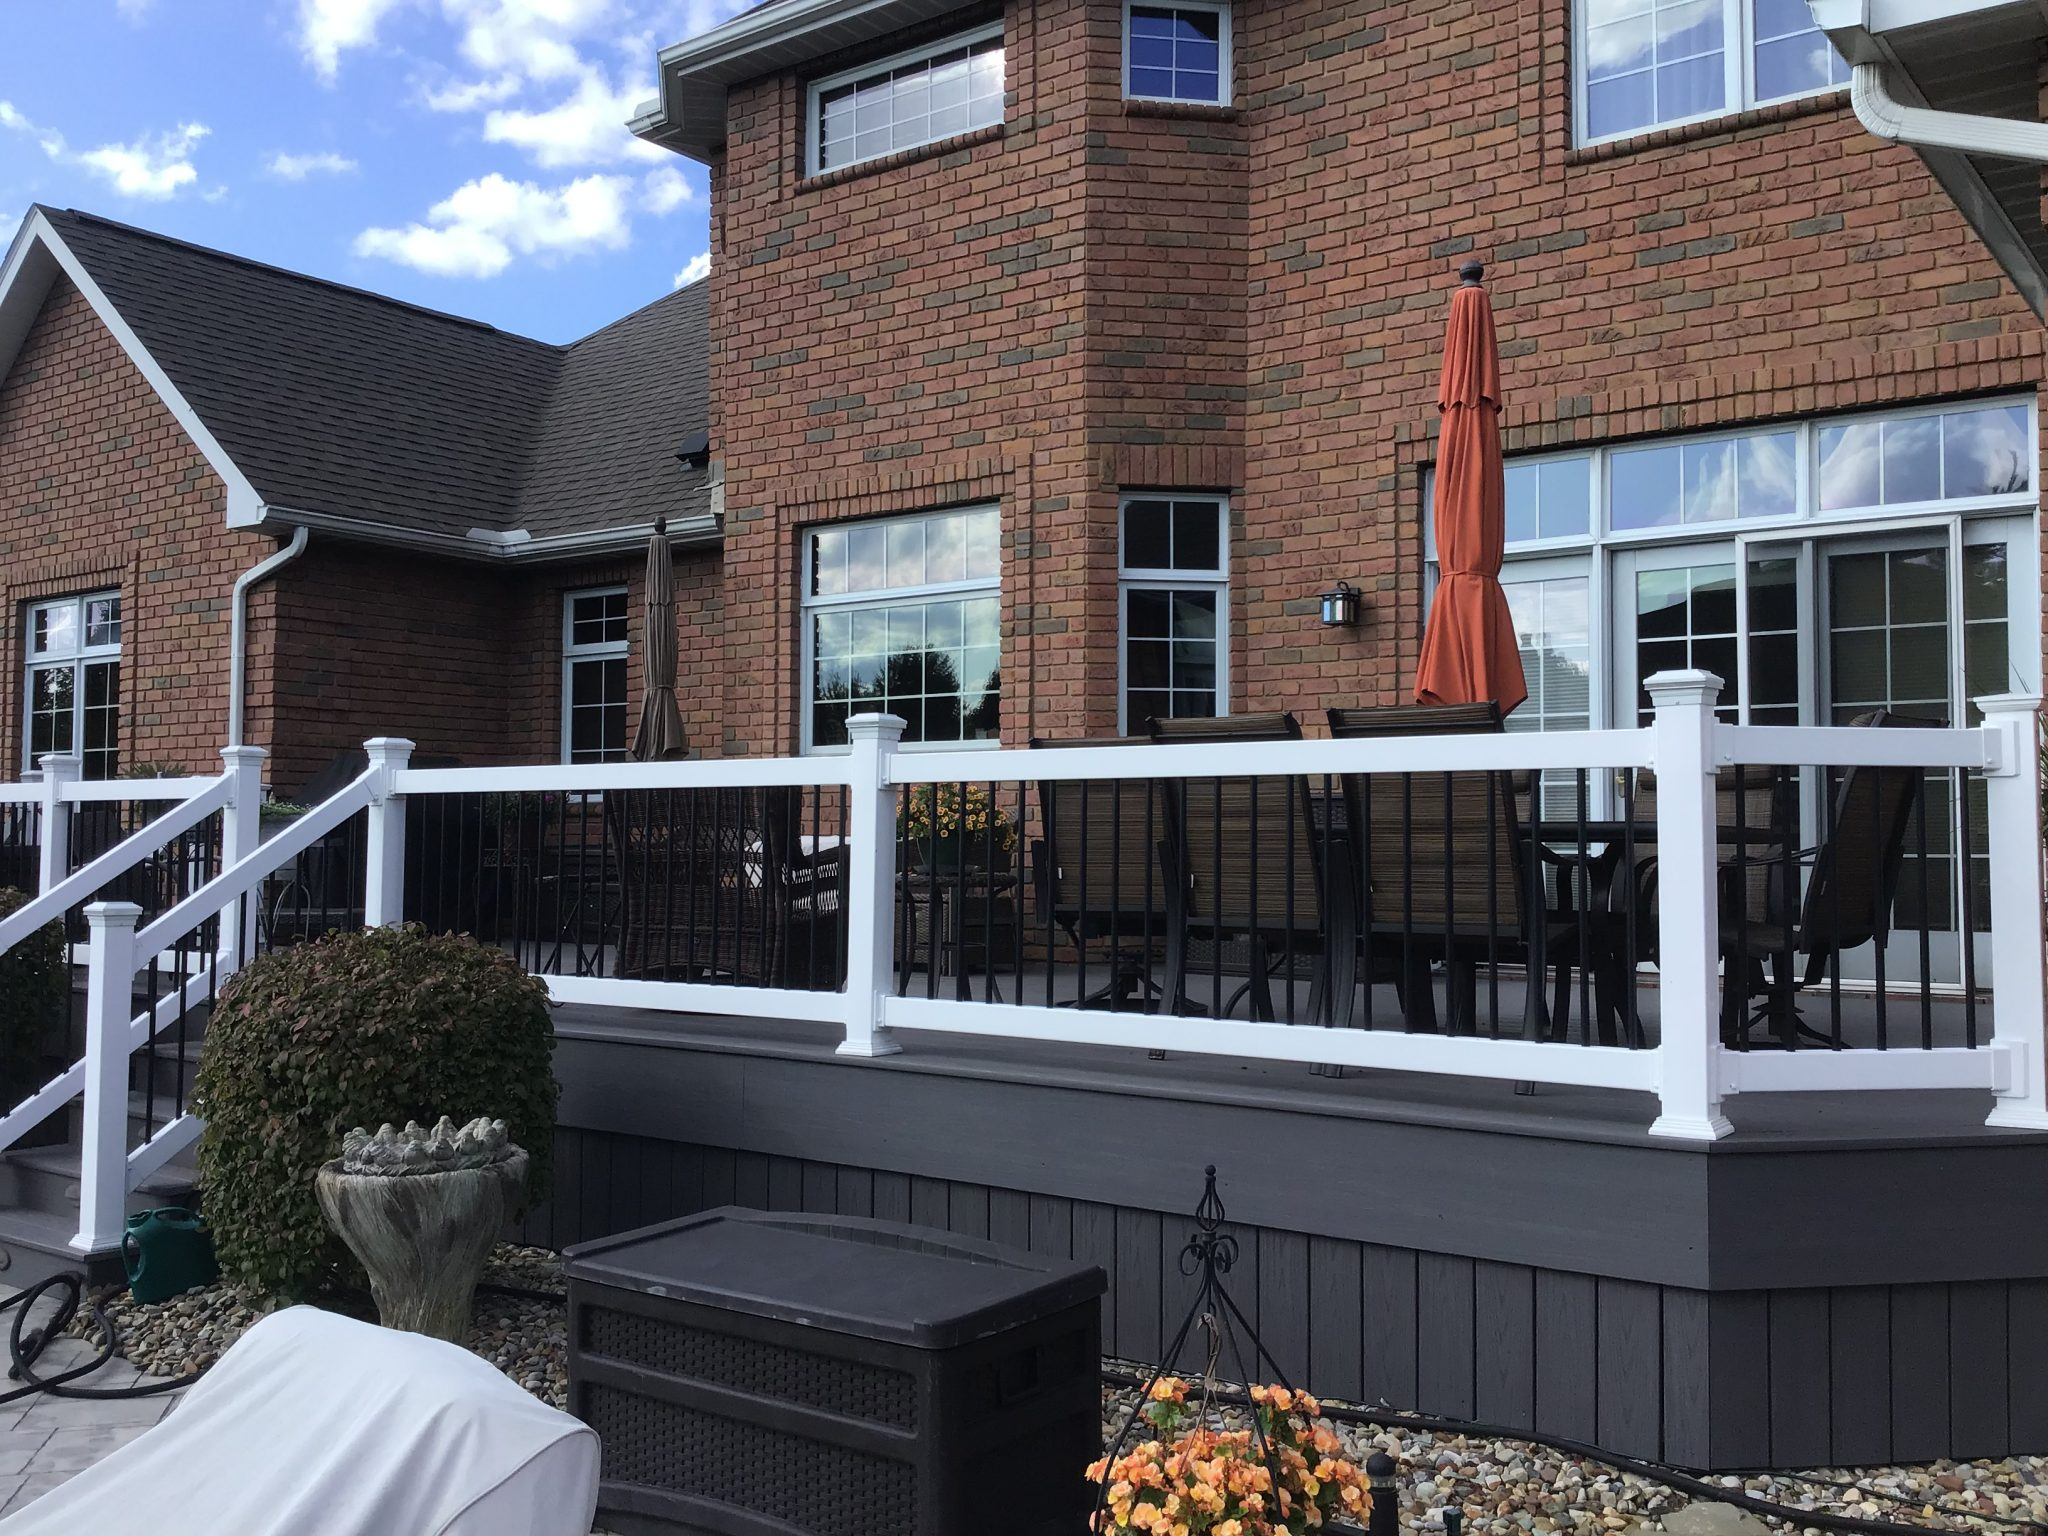 newly installed deck with white and black railing